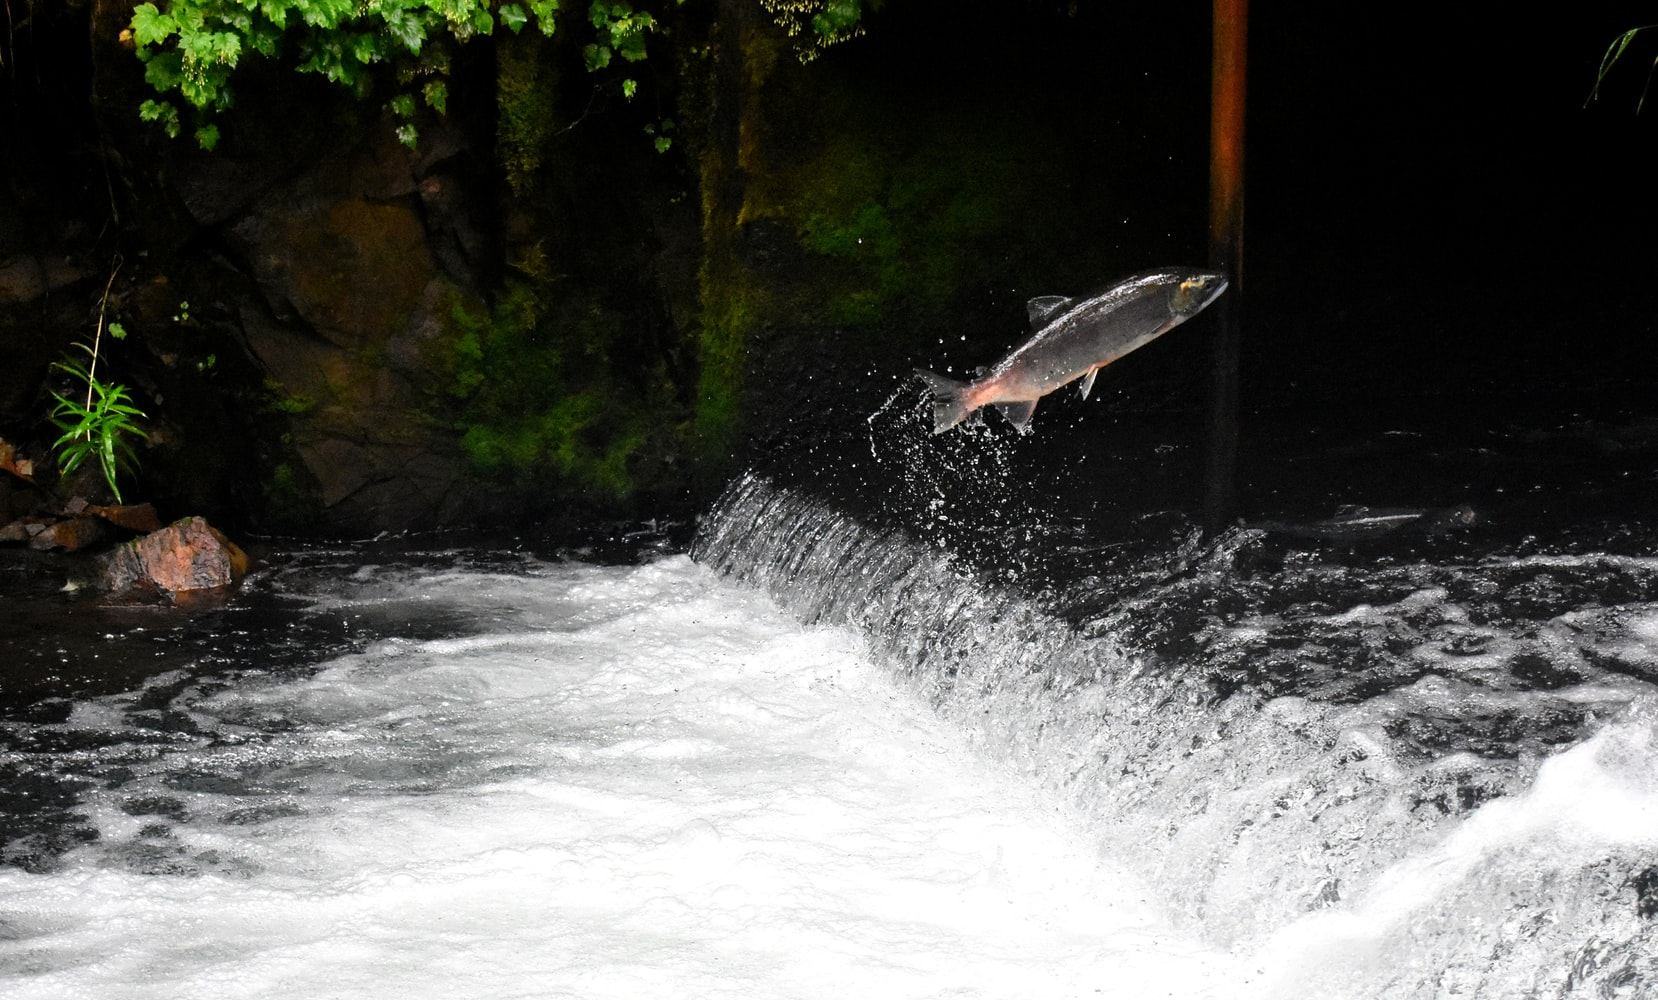 How Long Before These Salmon Are Gone? 'Maybe 20 Years'